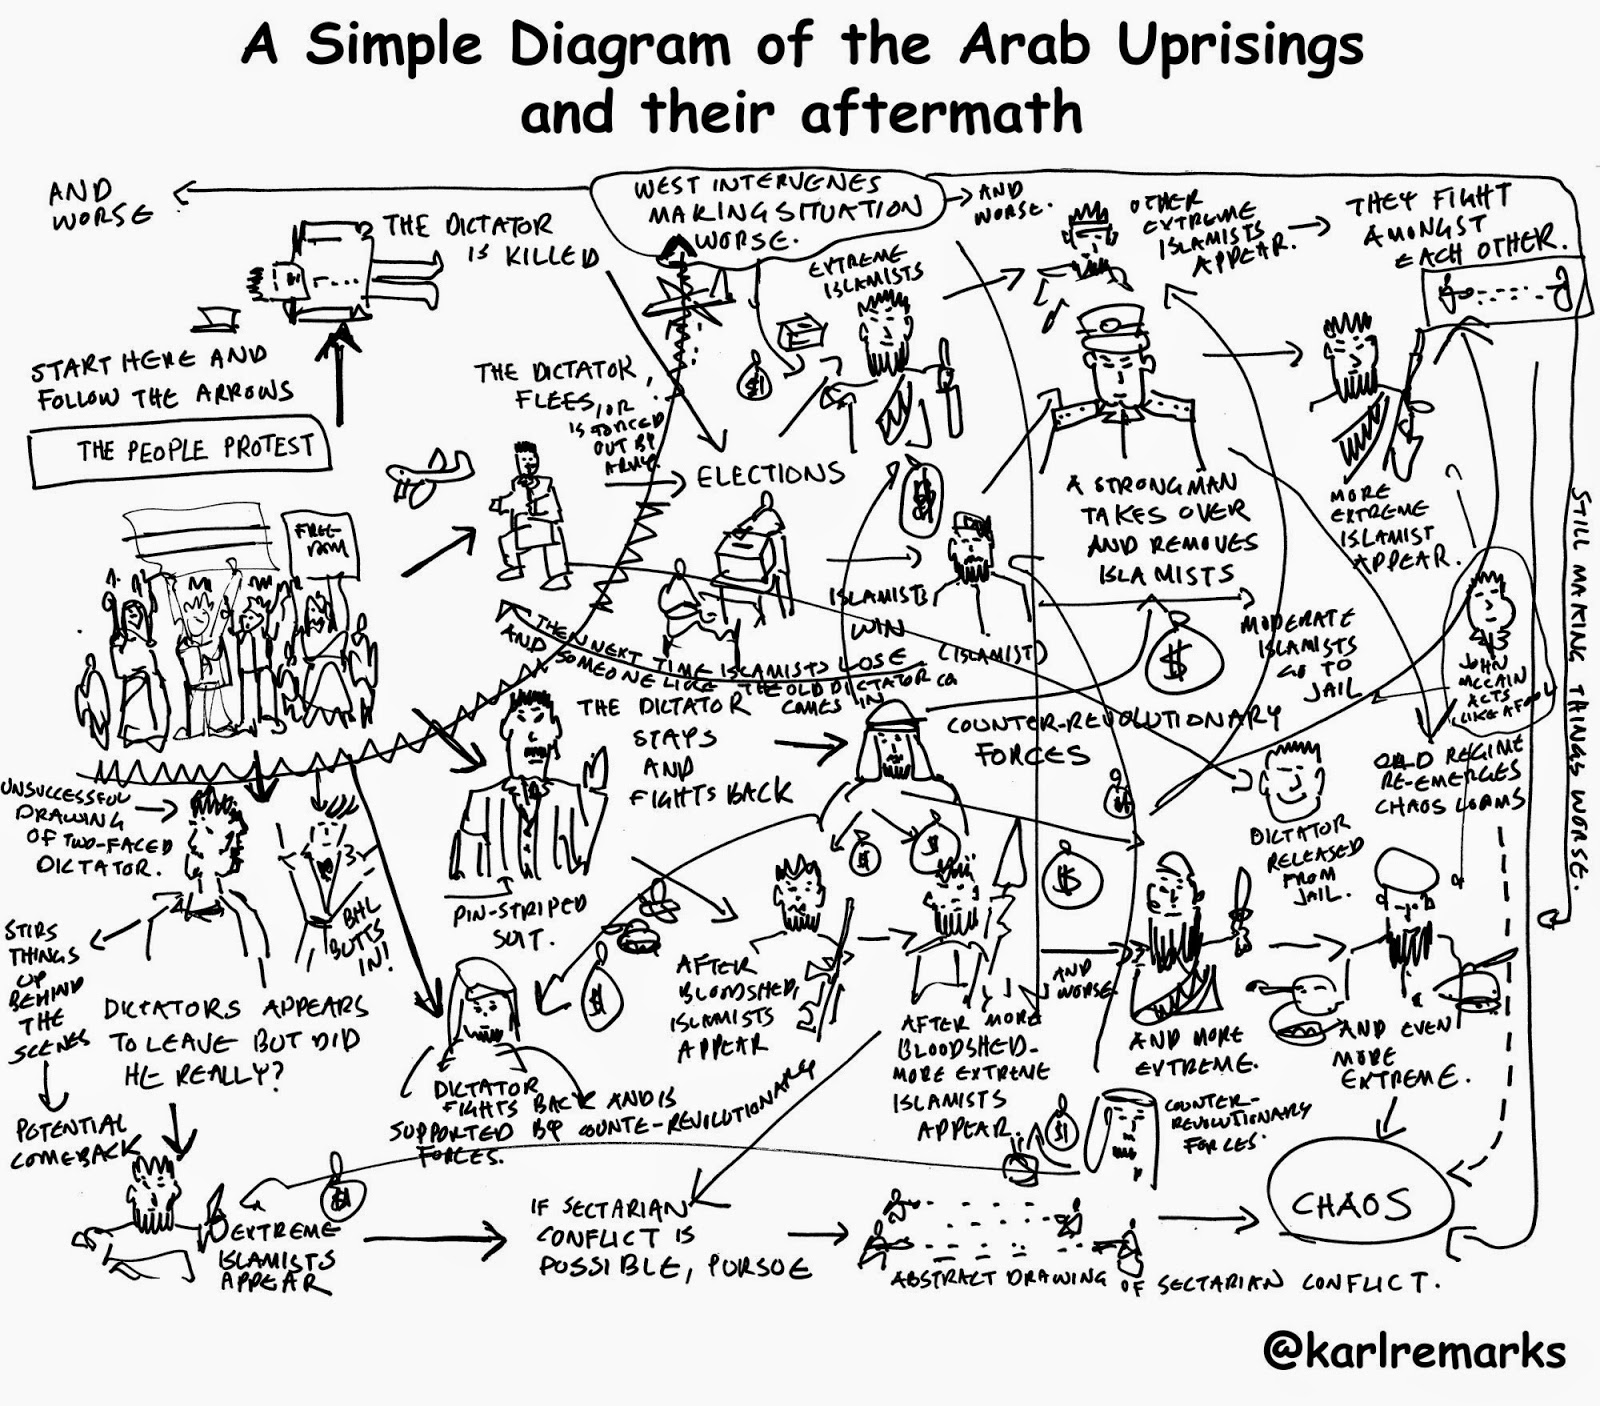 Karl remarks a simple diagram of the arab uprisings and their aftermath